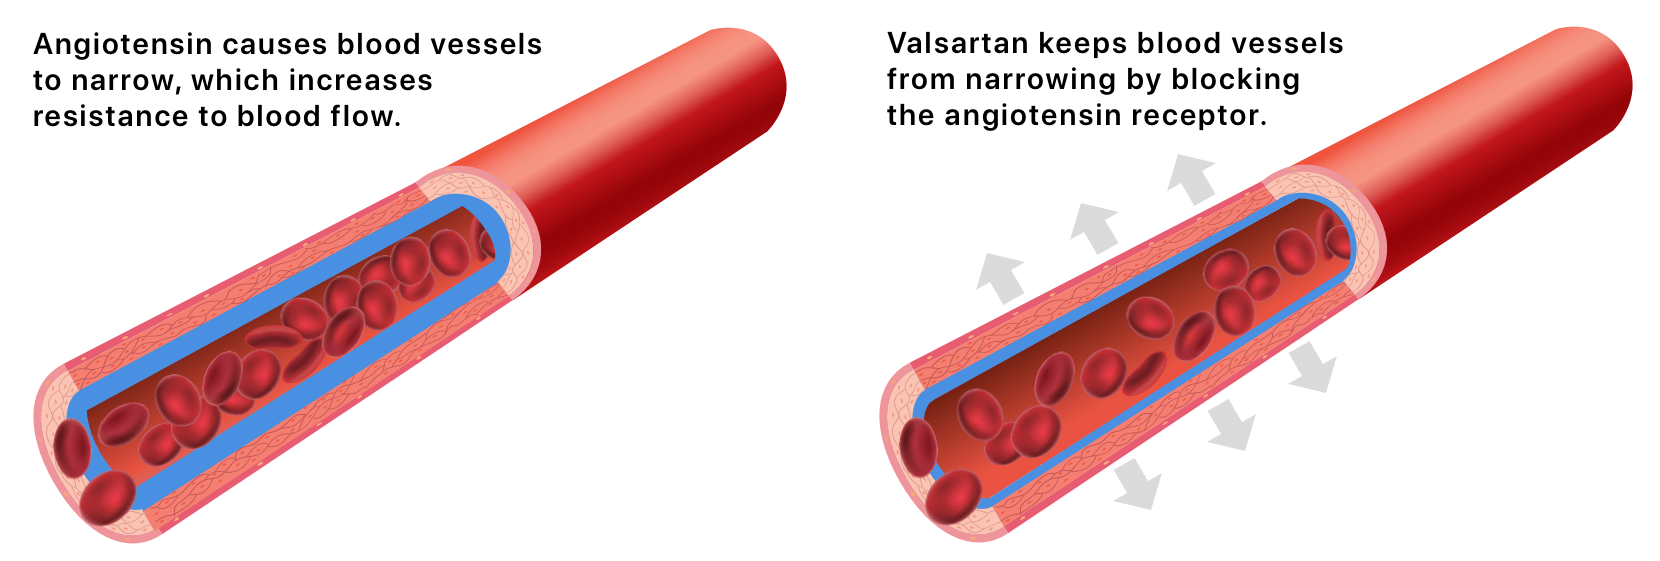 Illustration of how Valsartan releases high blood pressure in blood vessels.